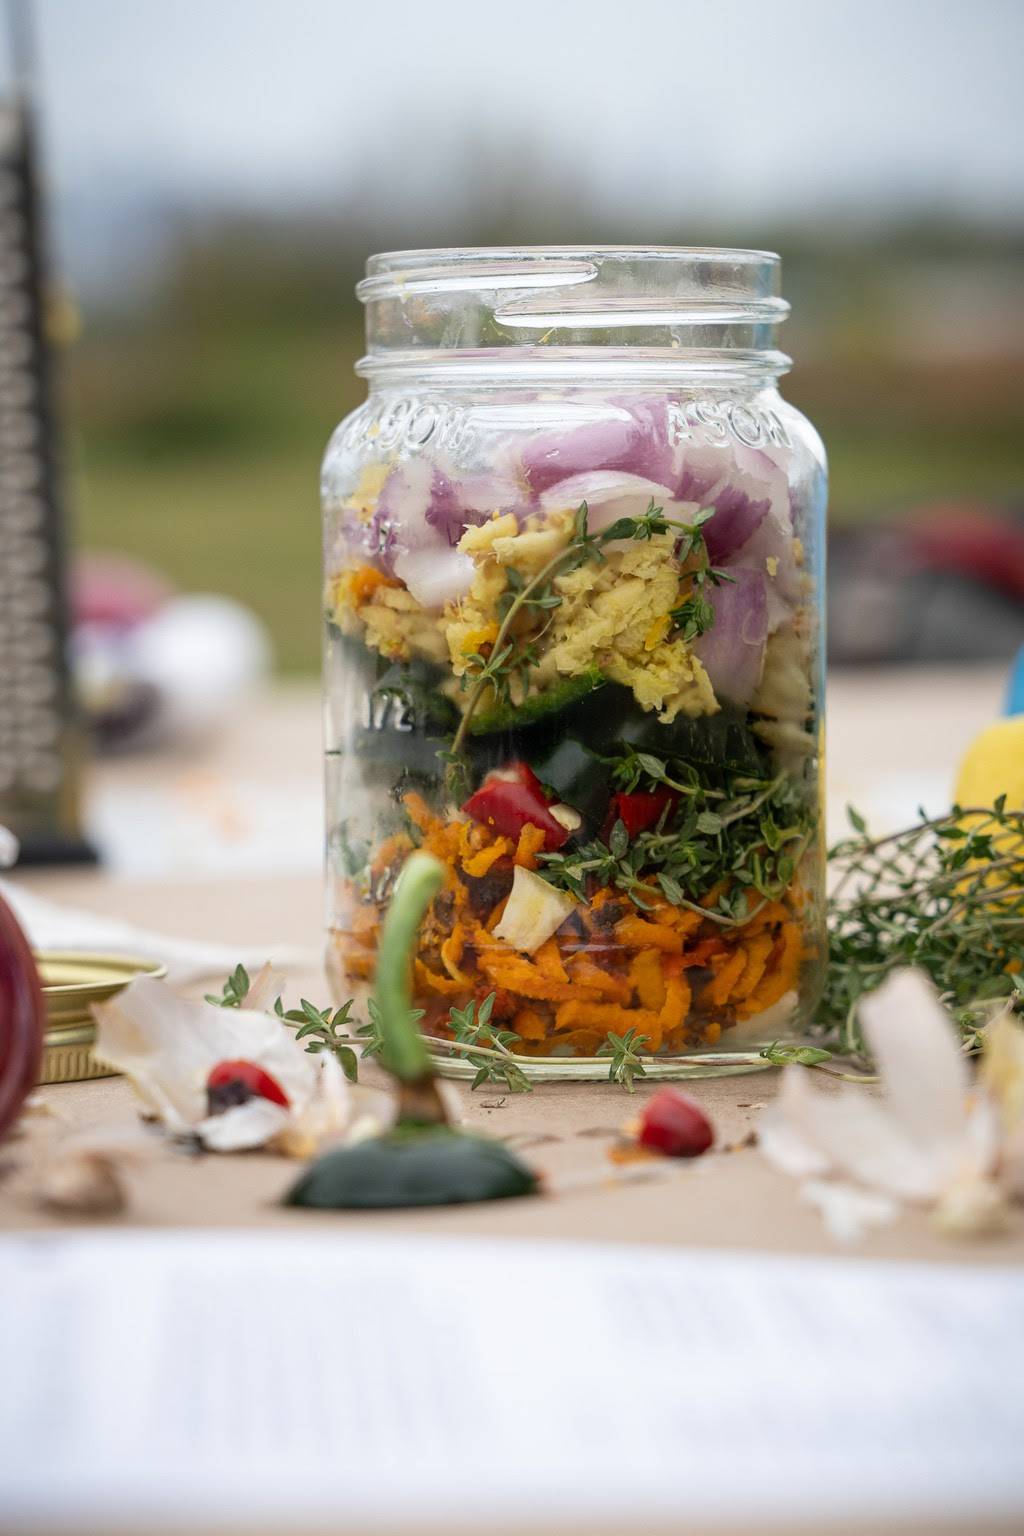 Layers upon layers of fresh colorful medicinal herbs and spices fill a glass jar from this Fire Cider workshop at Bartram's Garden in November 2020. Photo by Marc Steiner.